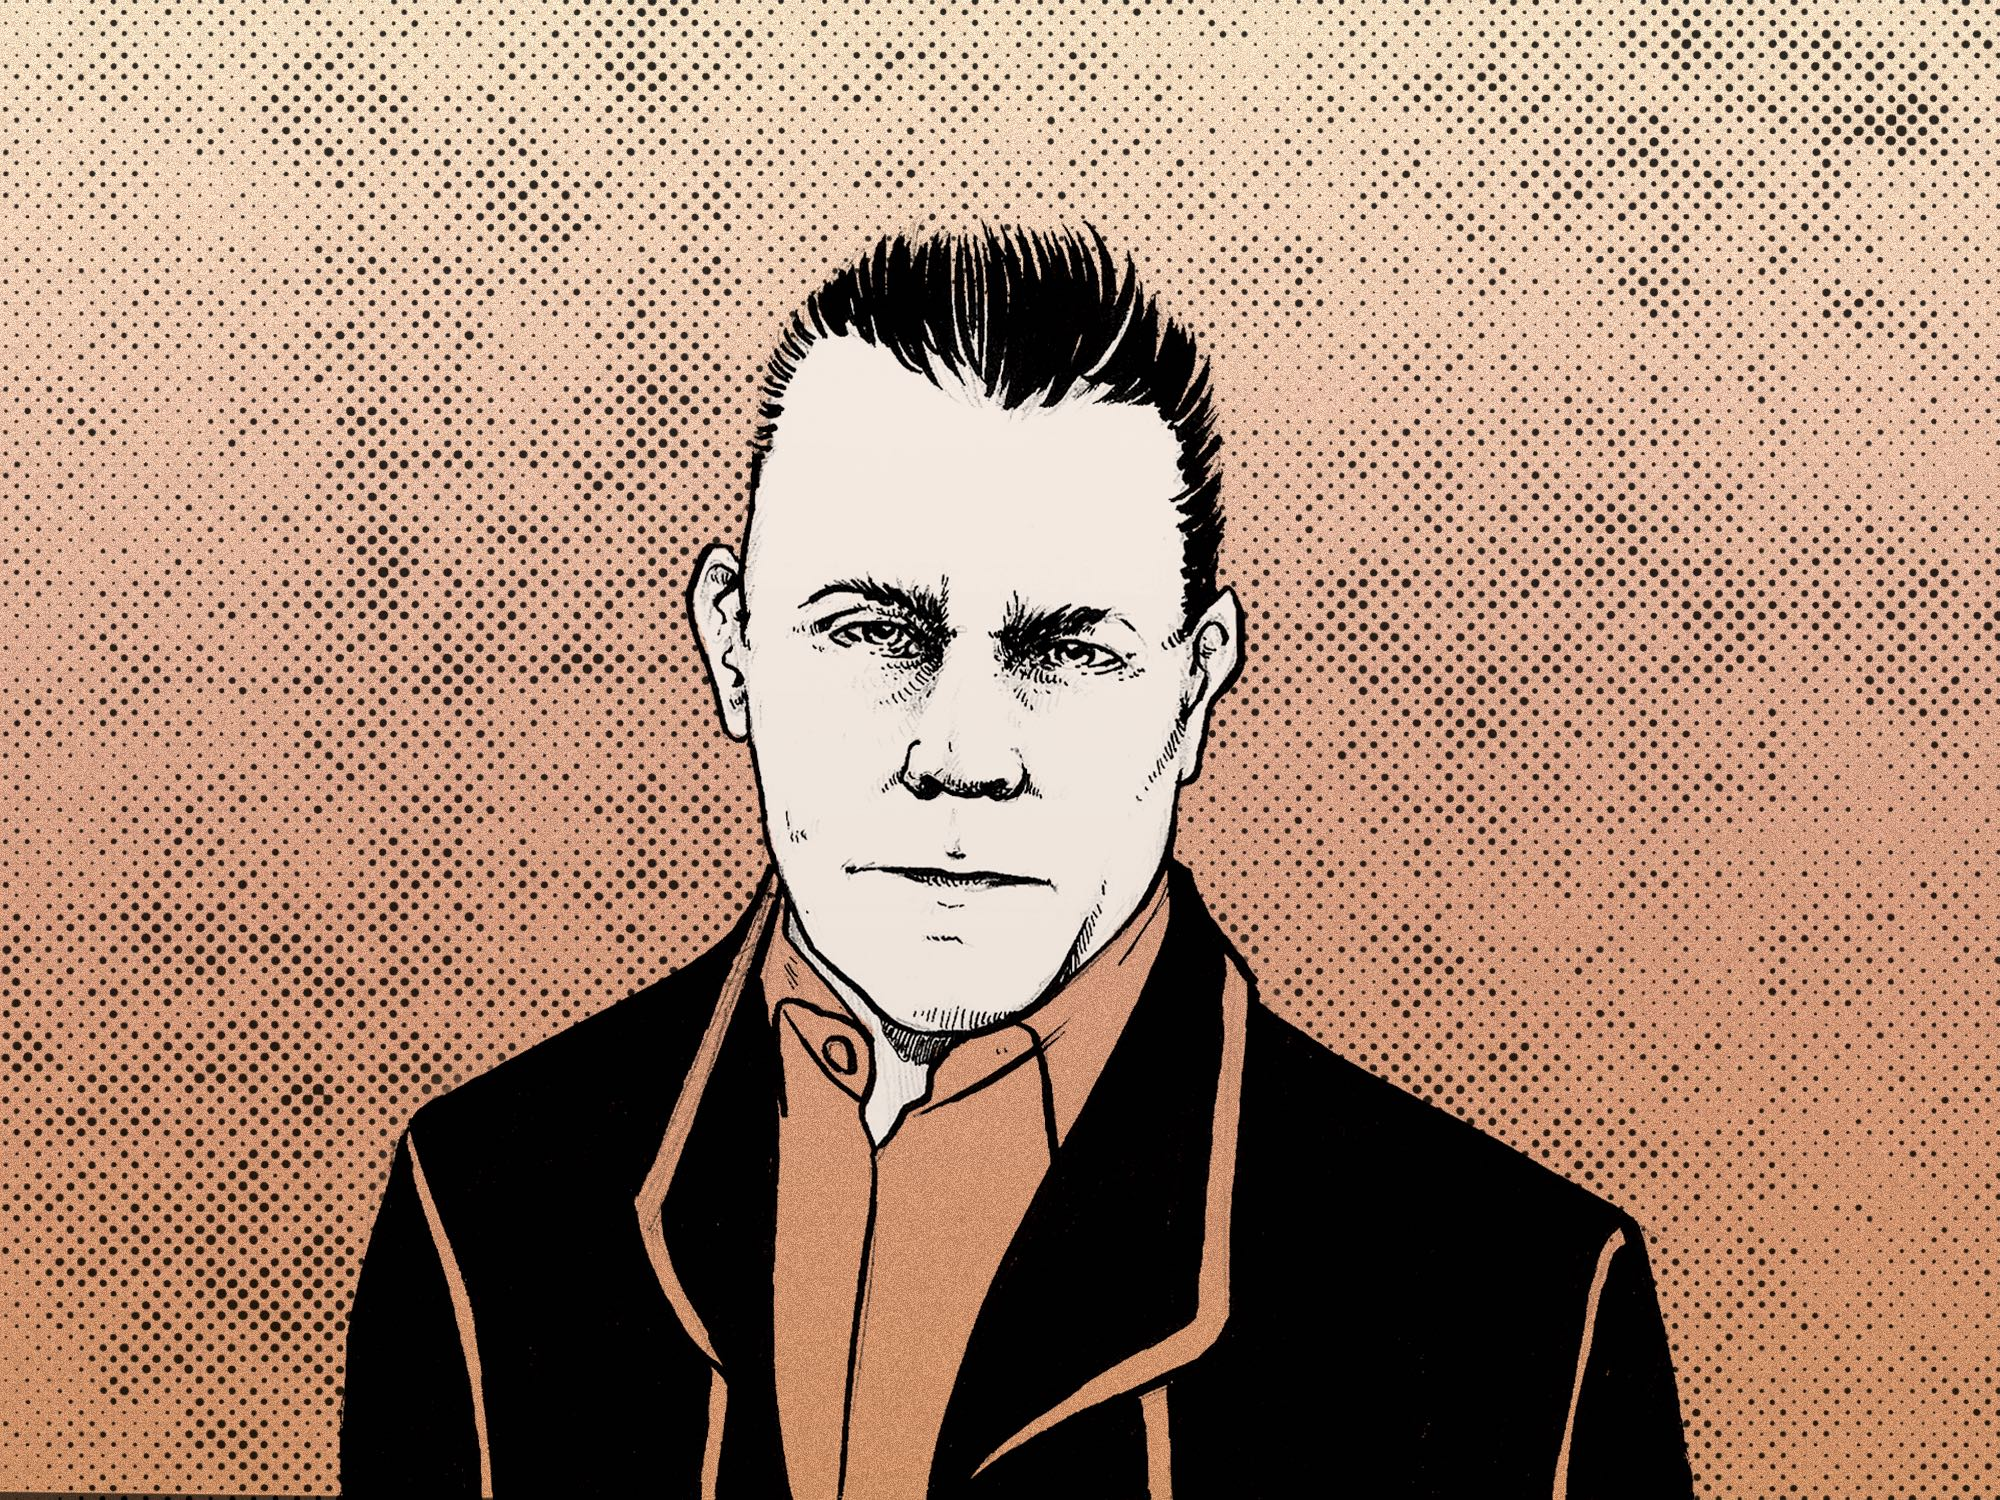 Ray Liotta illustrated portrait